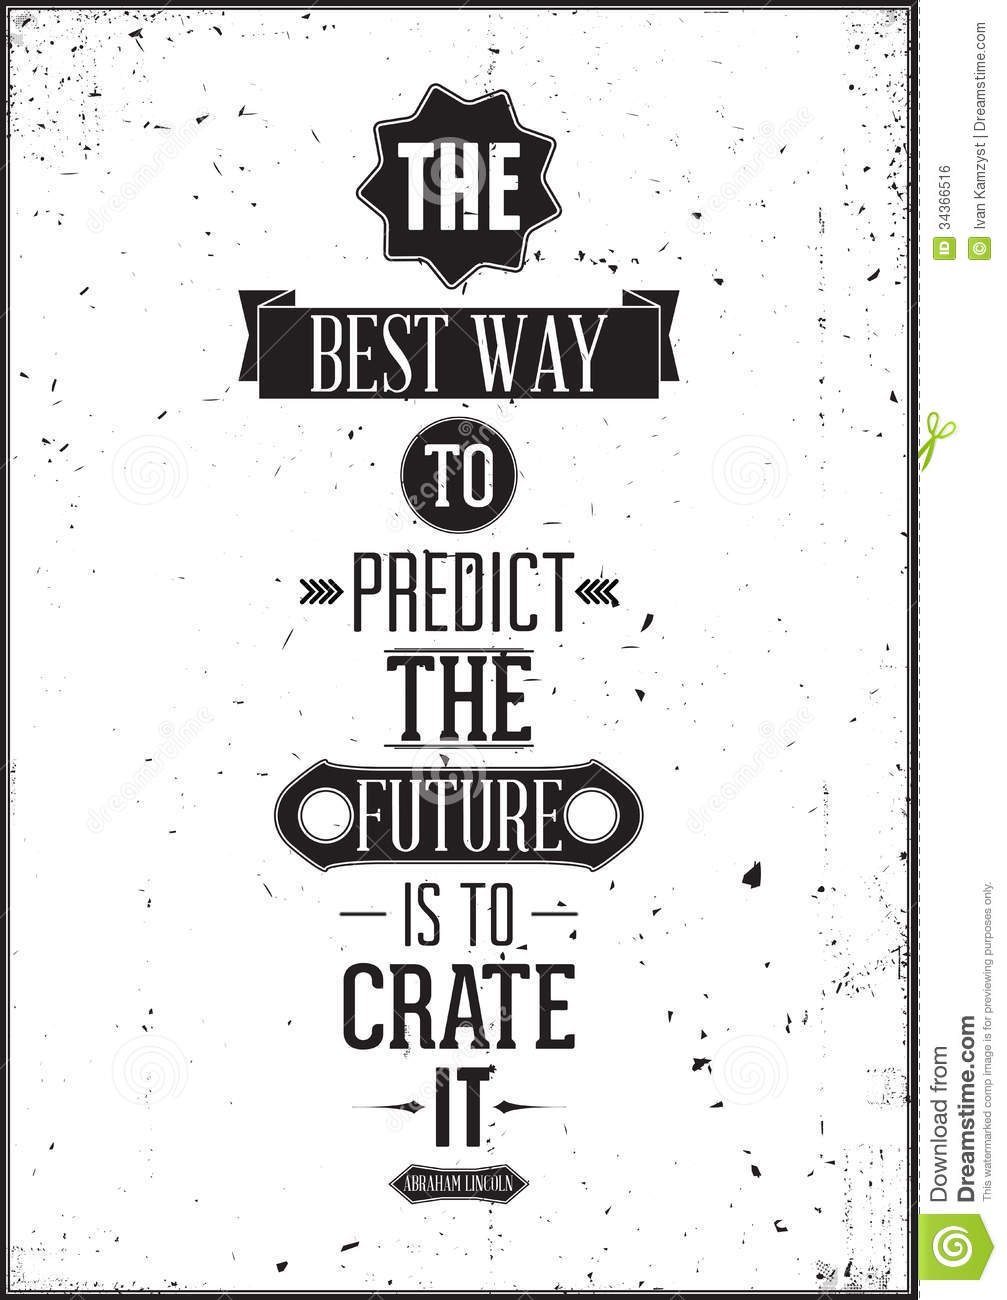 The Best Way To Predict The Future Is To Create It Royalty Free Stock Image  Image 34366516